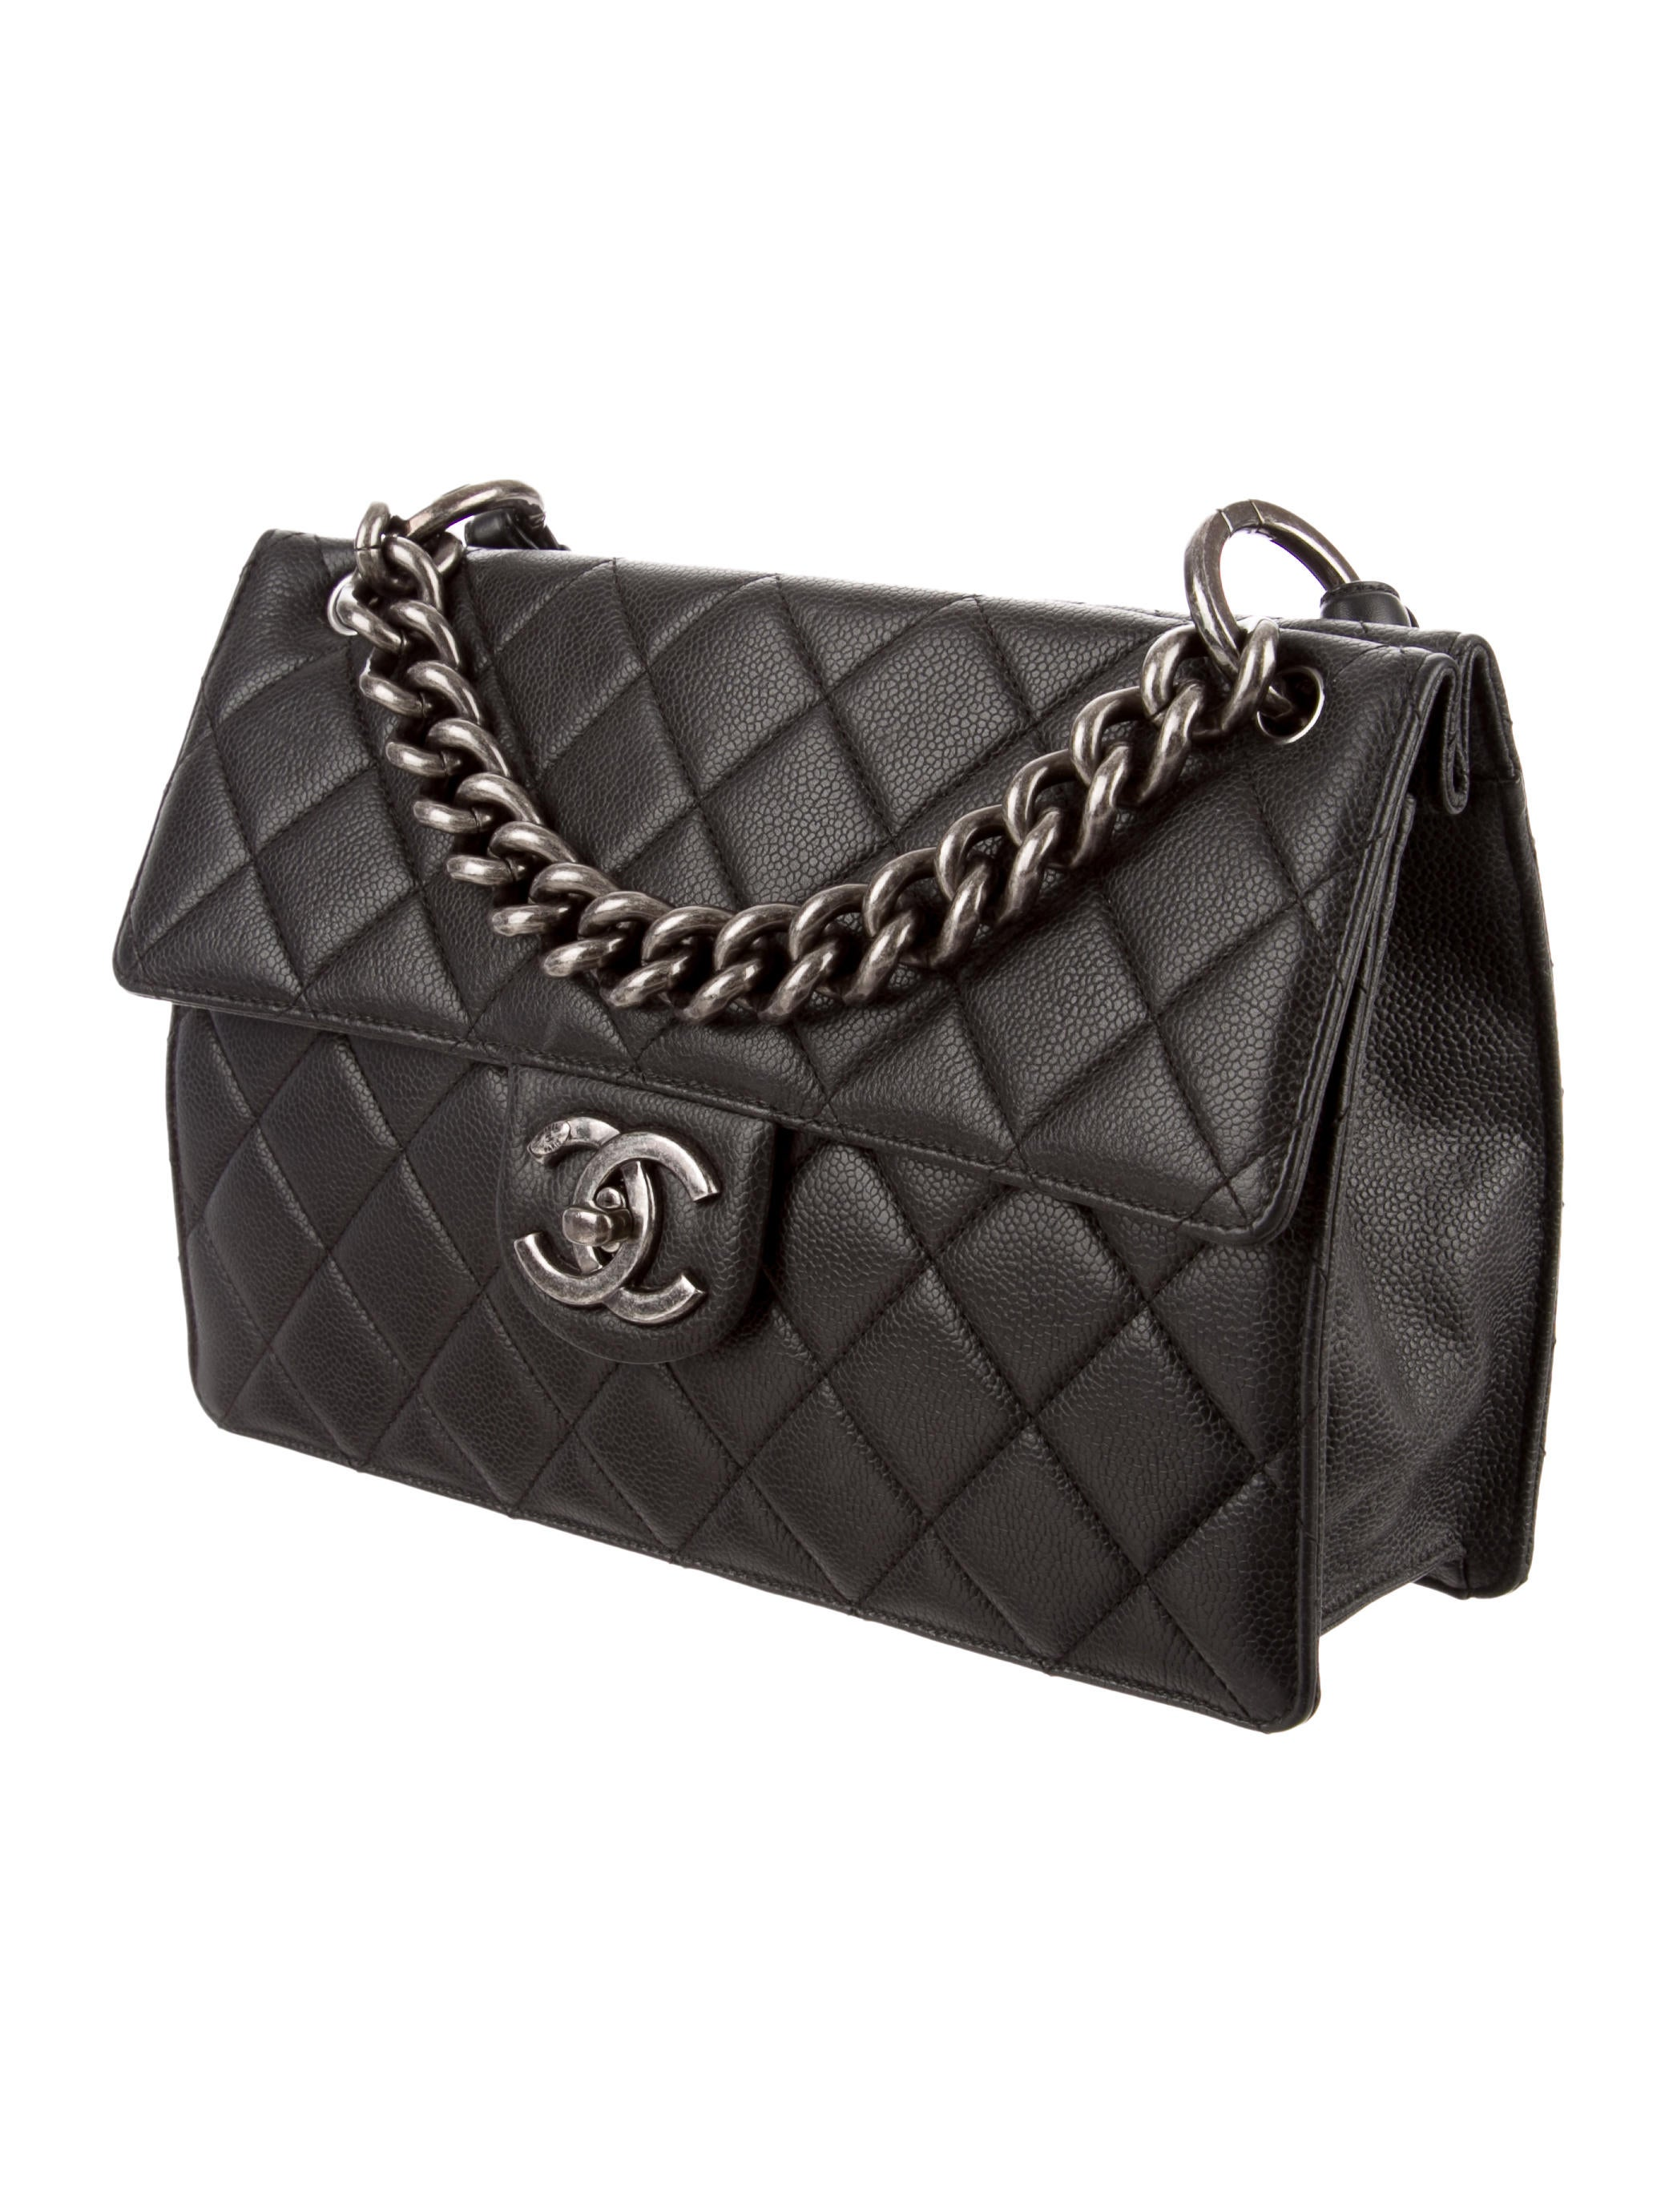 35d7af6484c94f Class Chanel Bags Sale | Stanford Center for Opportunity Policy in ...